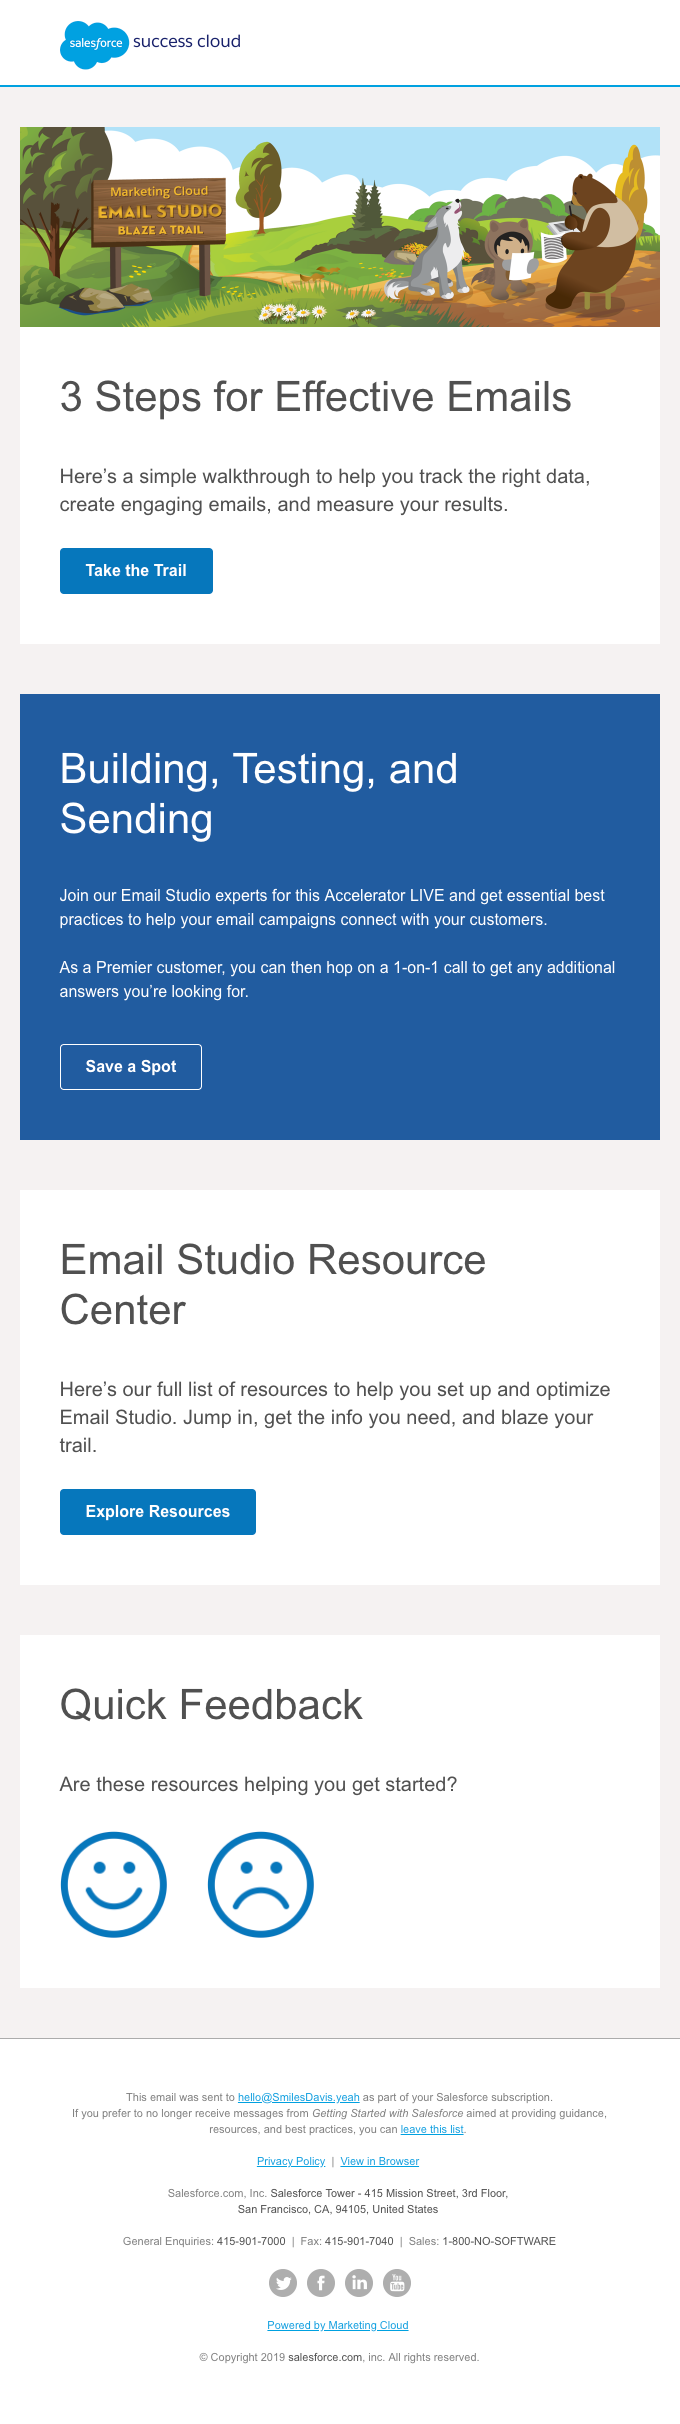 Onboarding Emails | Really Good Emails